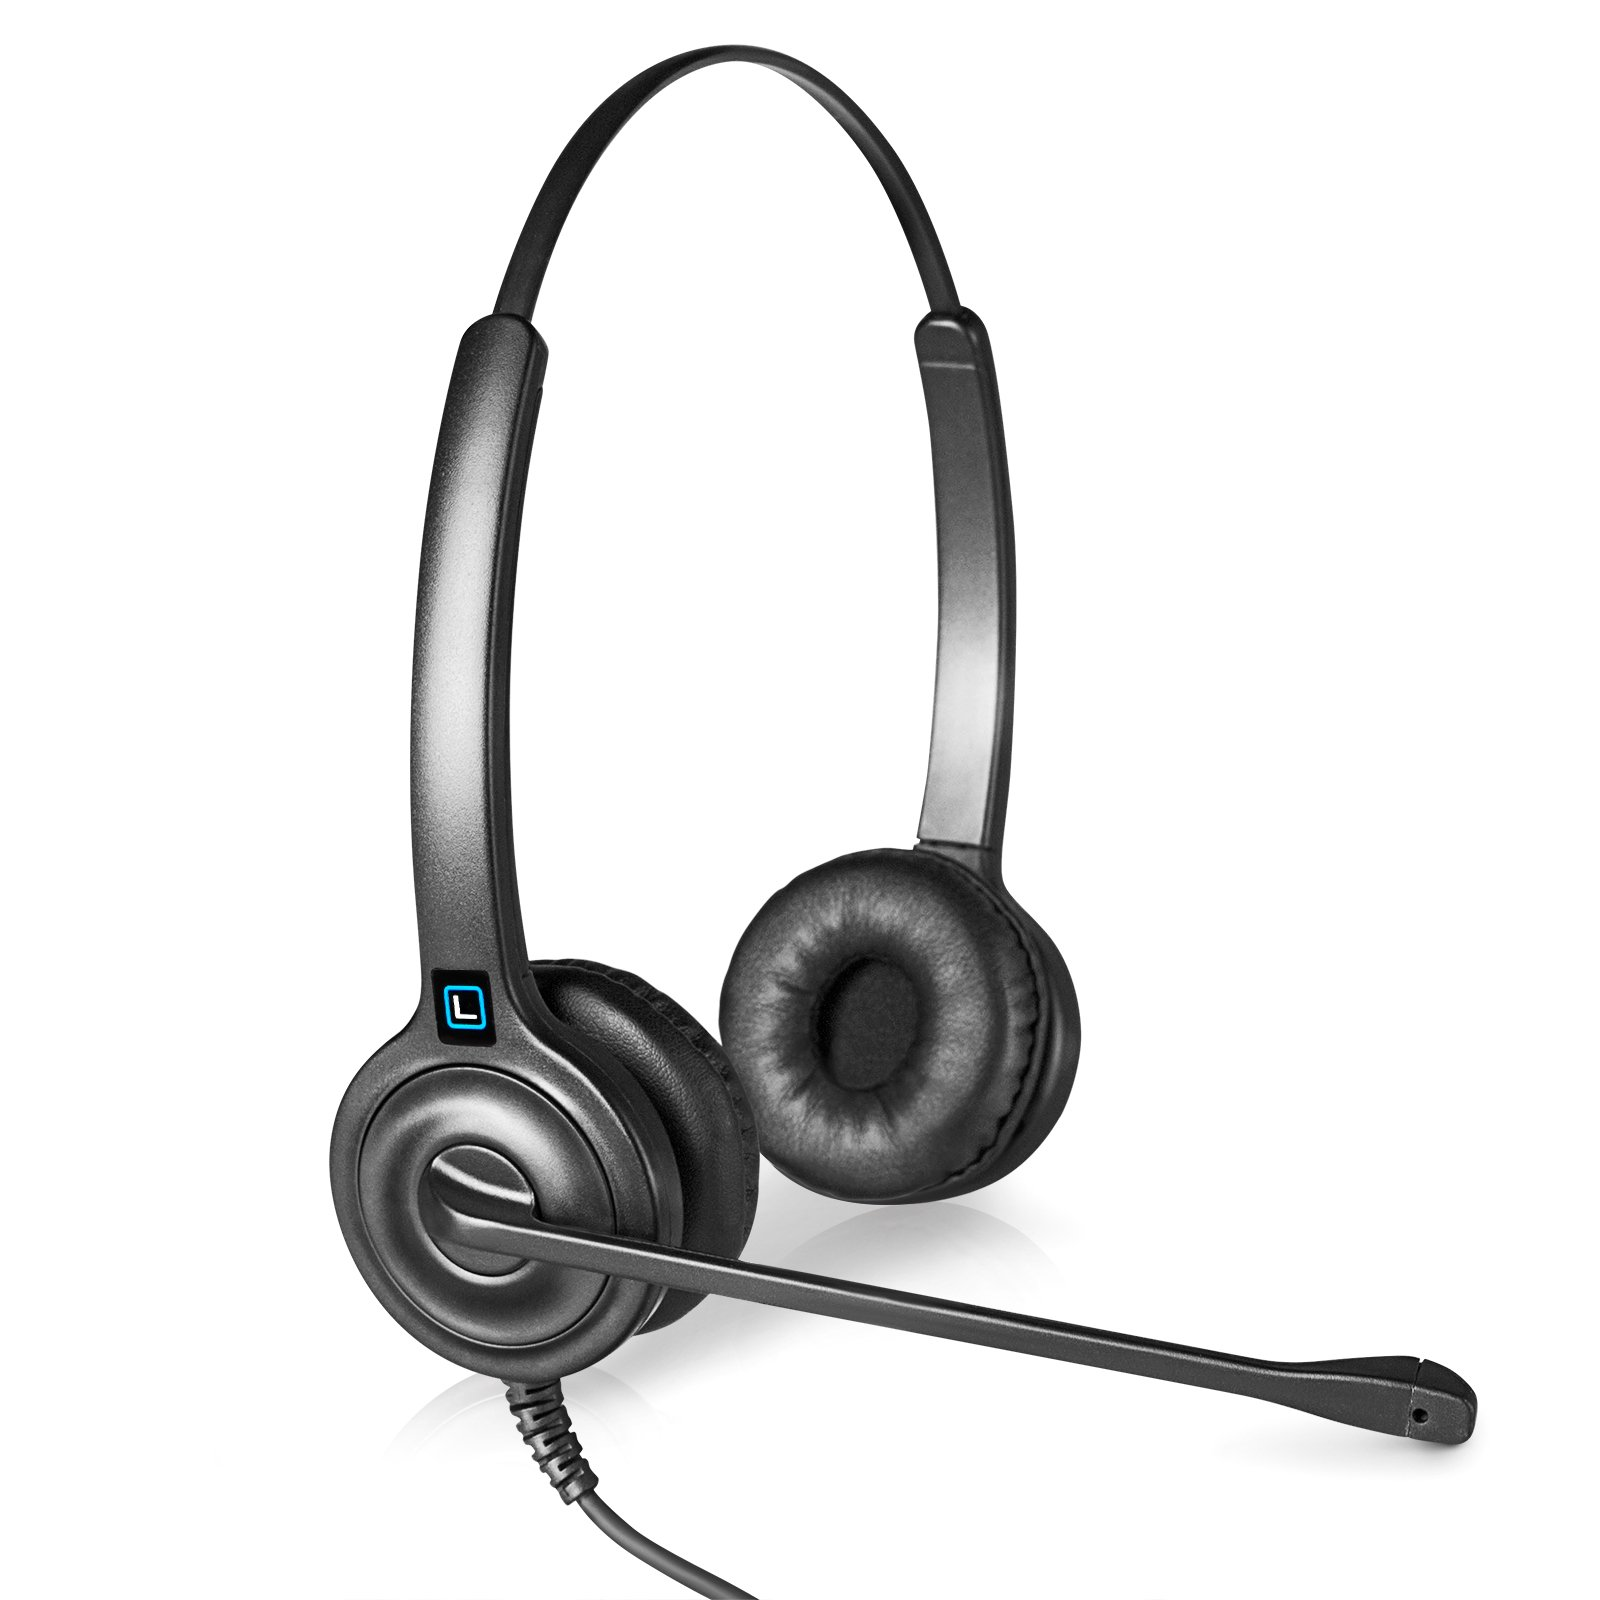 Leitner LH255 Dual-Ear Corded USB Headset with In-Line call control. Works with PC and Mac. Call control works with Skype for Business.